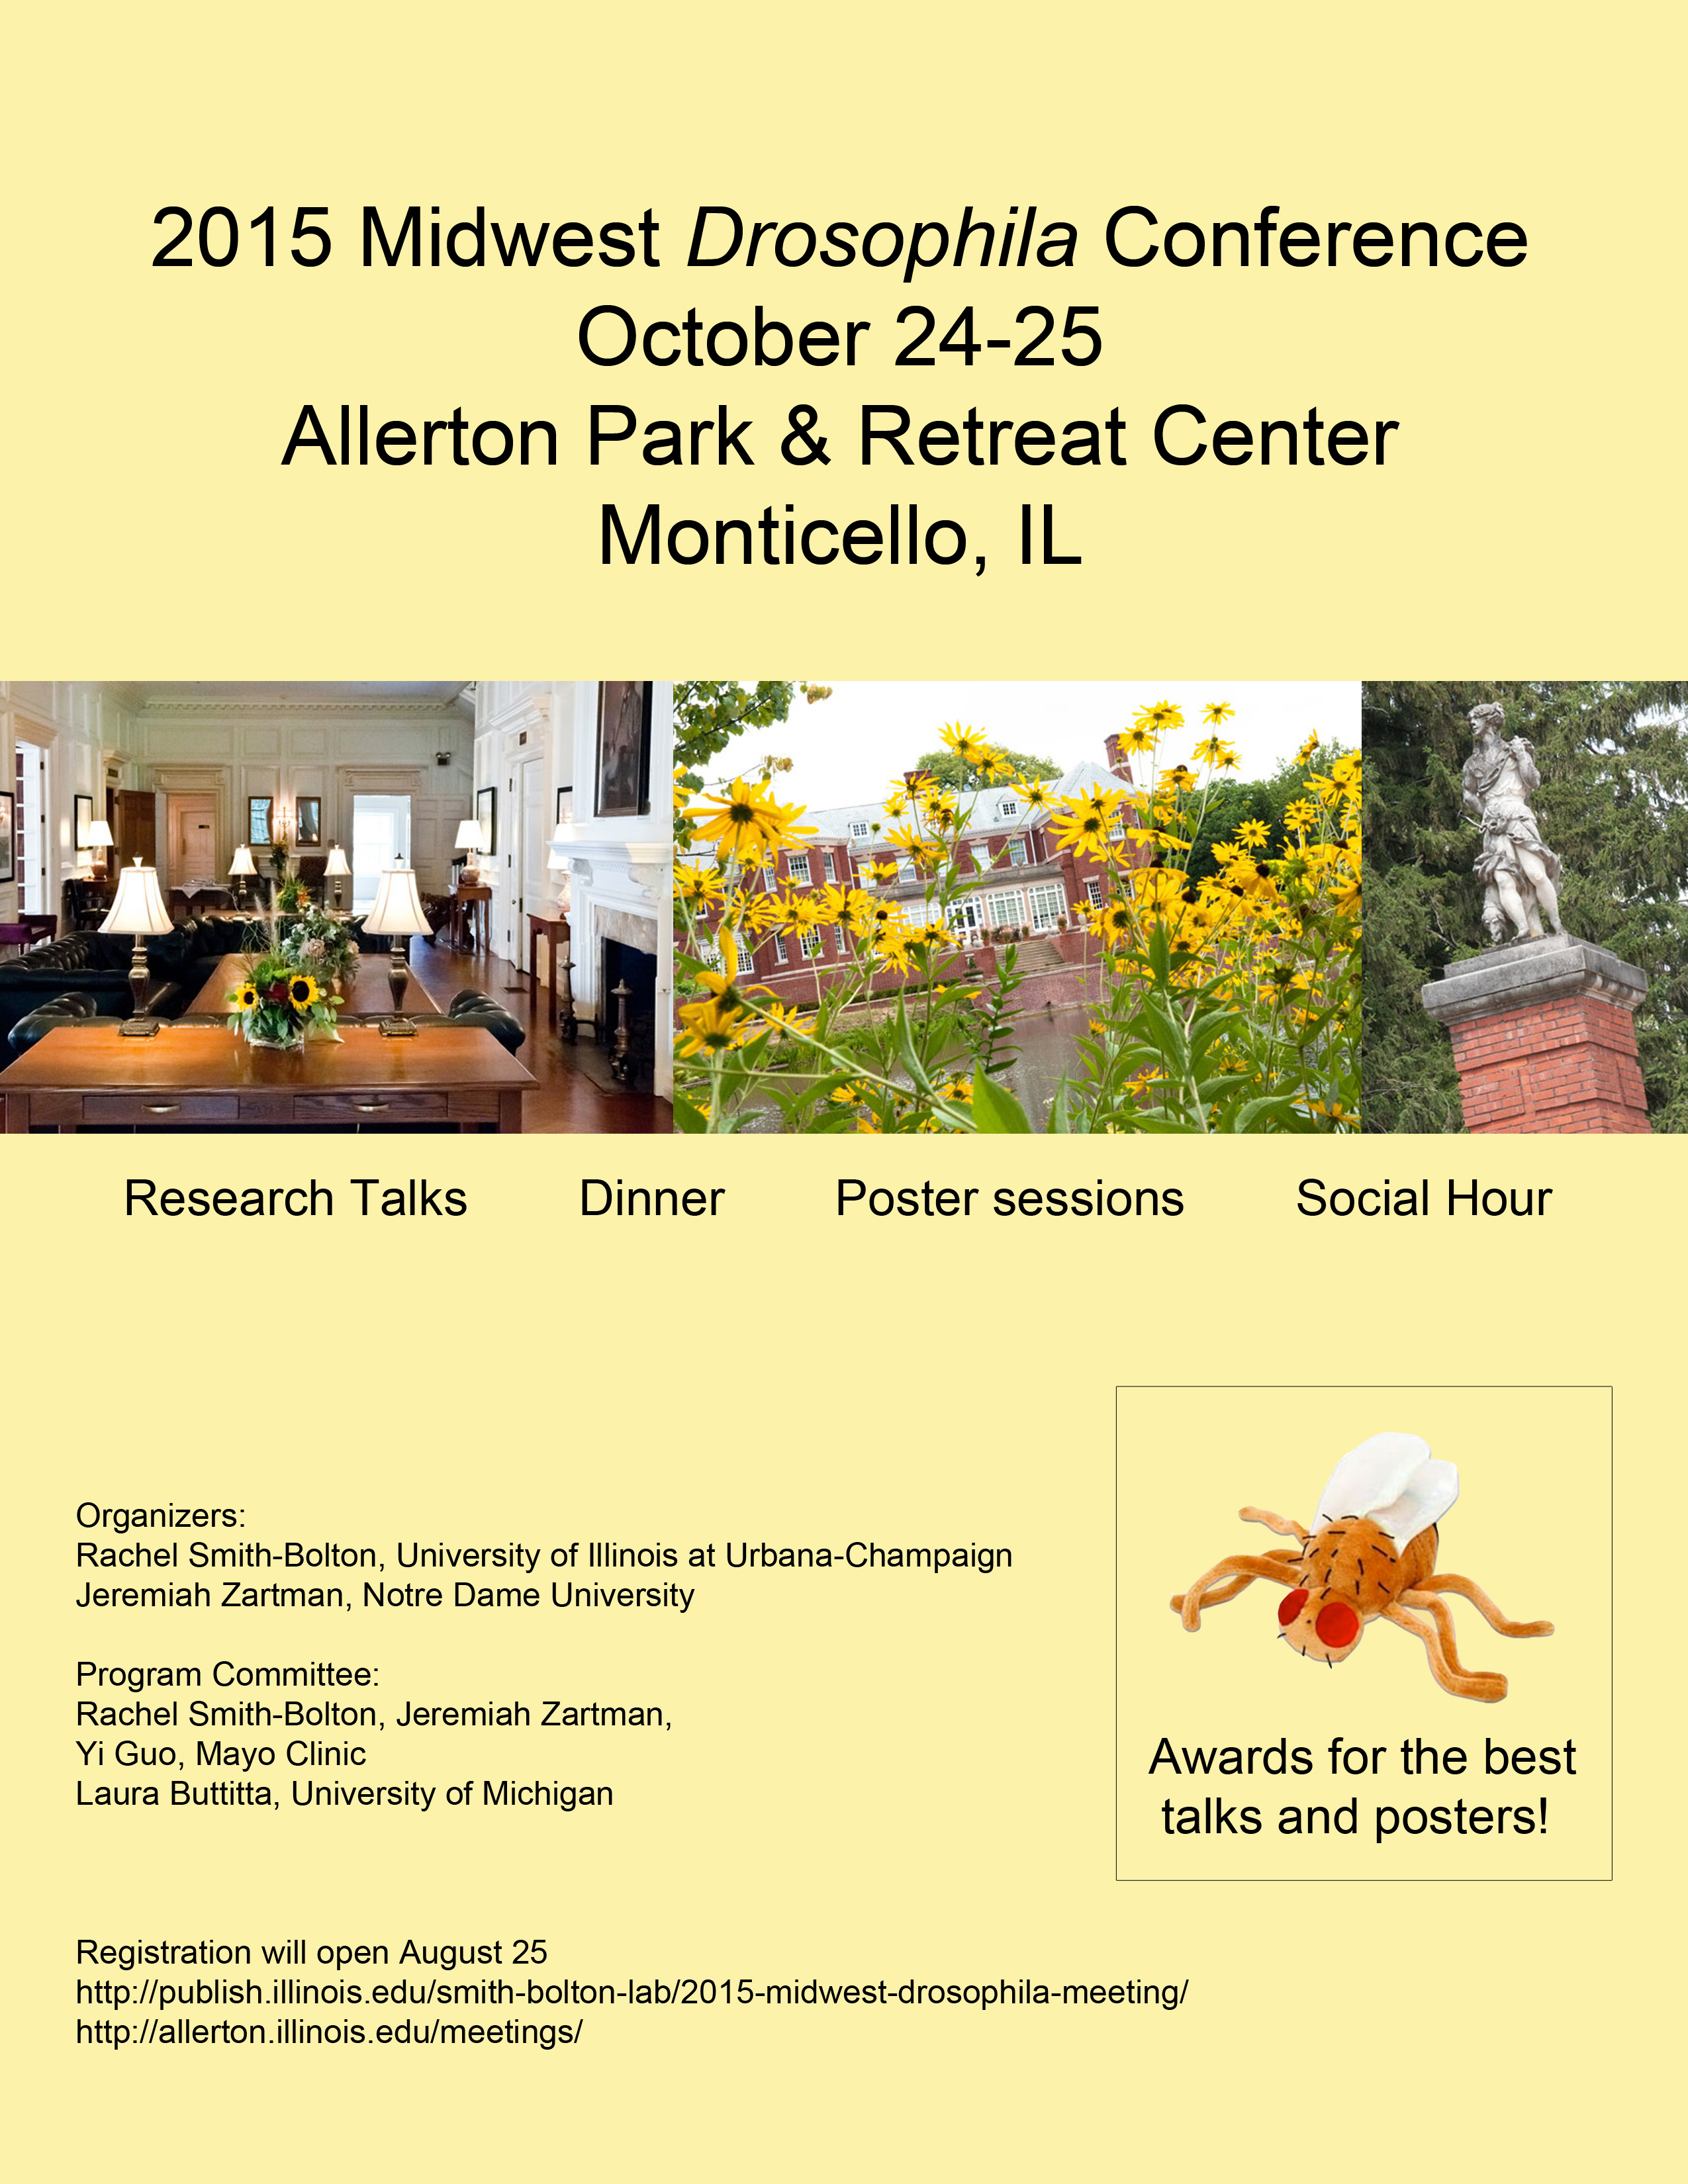 2015 Midwest Drosophila Meeting Flyer2